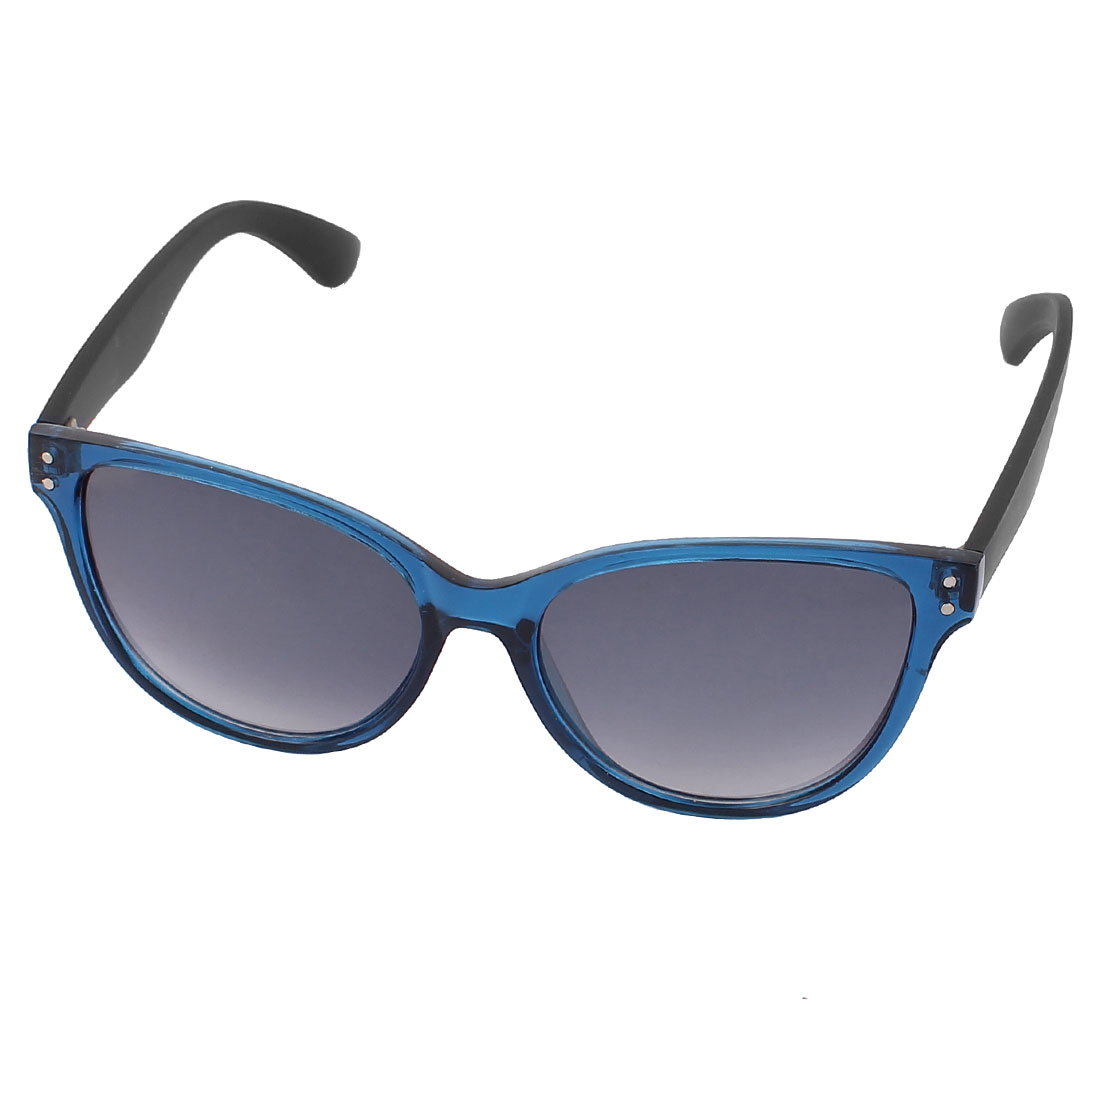 Unisex Clear Blue Plastic Full Frame Gradient Blue Lens Single Bridge Sunglasses Eyeswear Glasses Eyes Protector